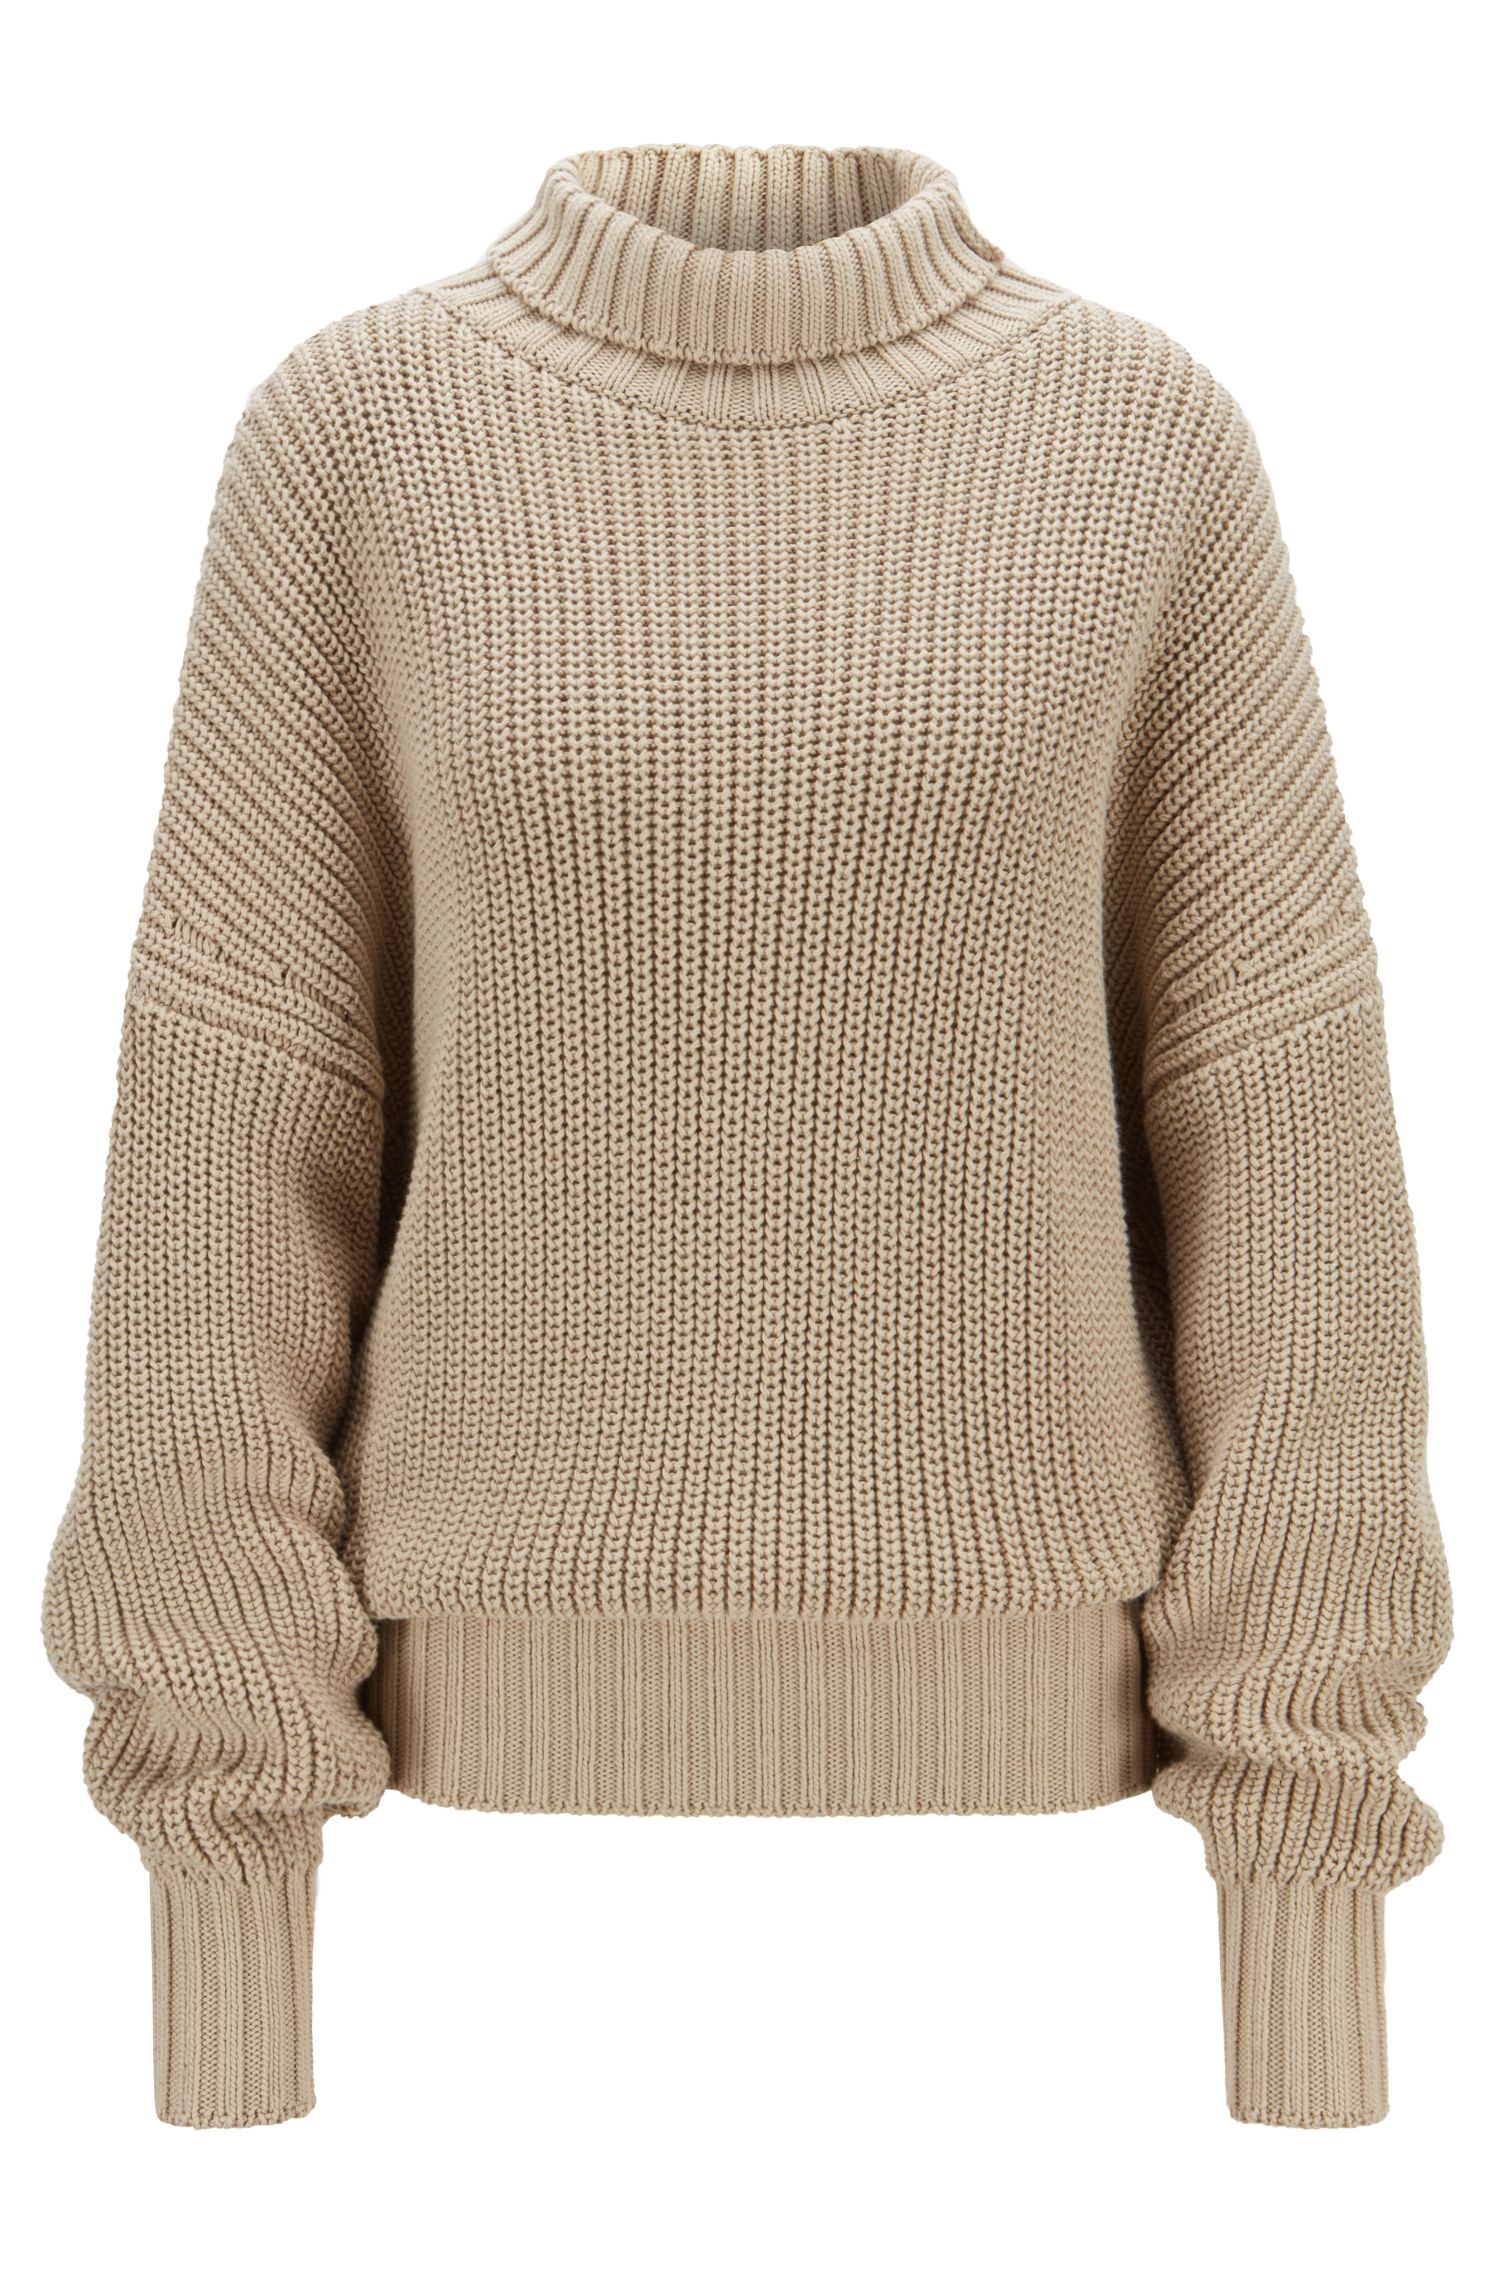 Oversized-fit turtleneck sweater with extra-long sleeves, Beige